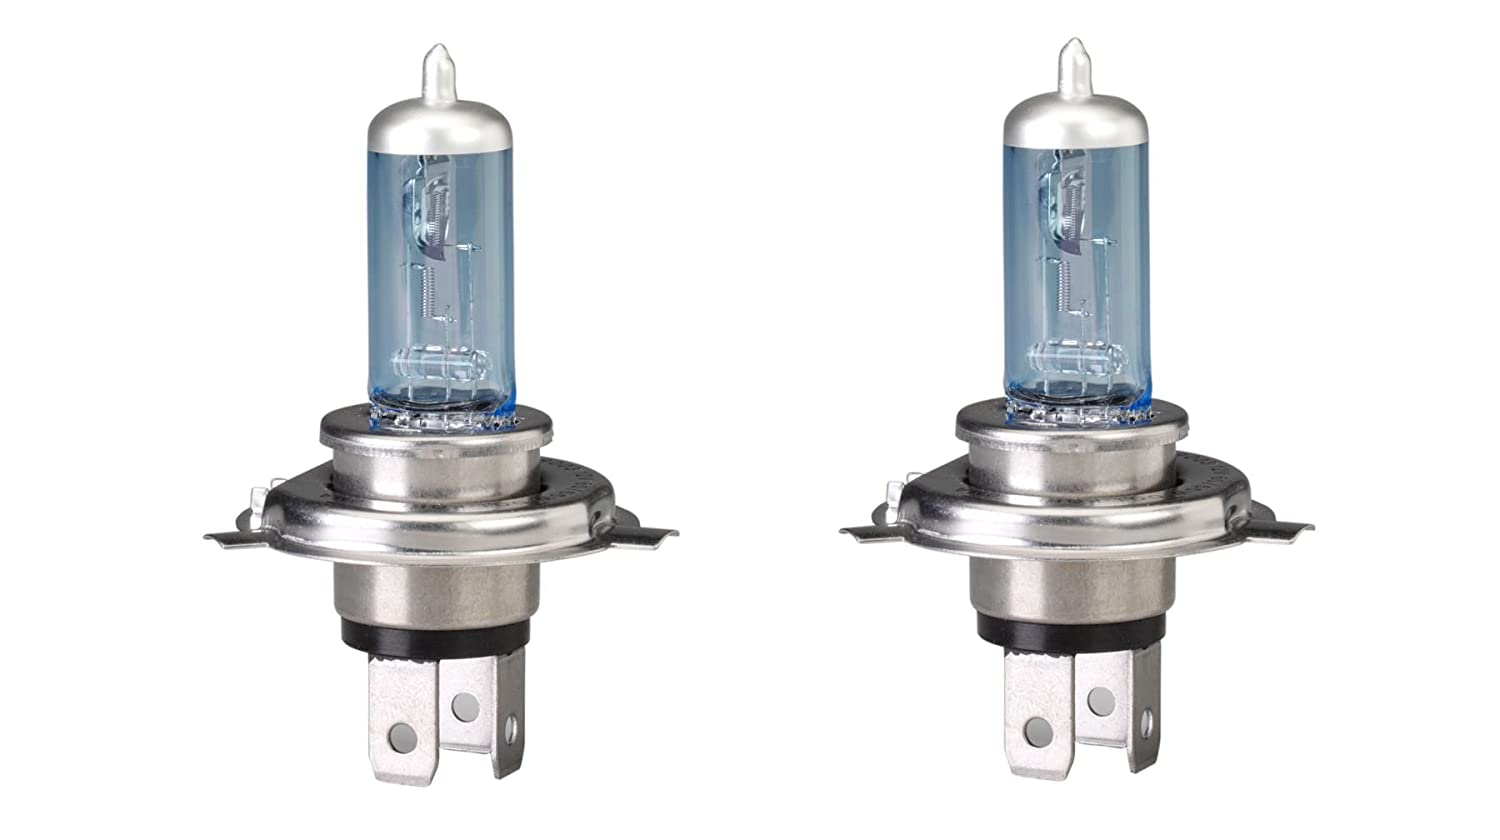 EiKO 9003/H4CVSU2 9003/H4 Clear Vision PRO Halogen Replacement Bulb, (Pack of 2)